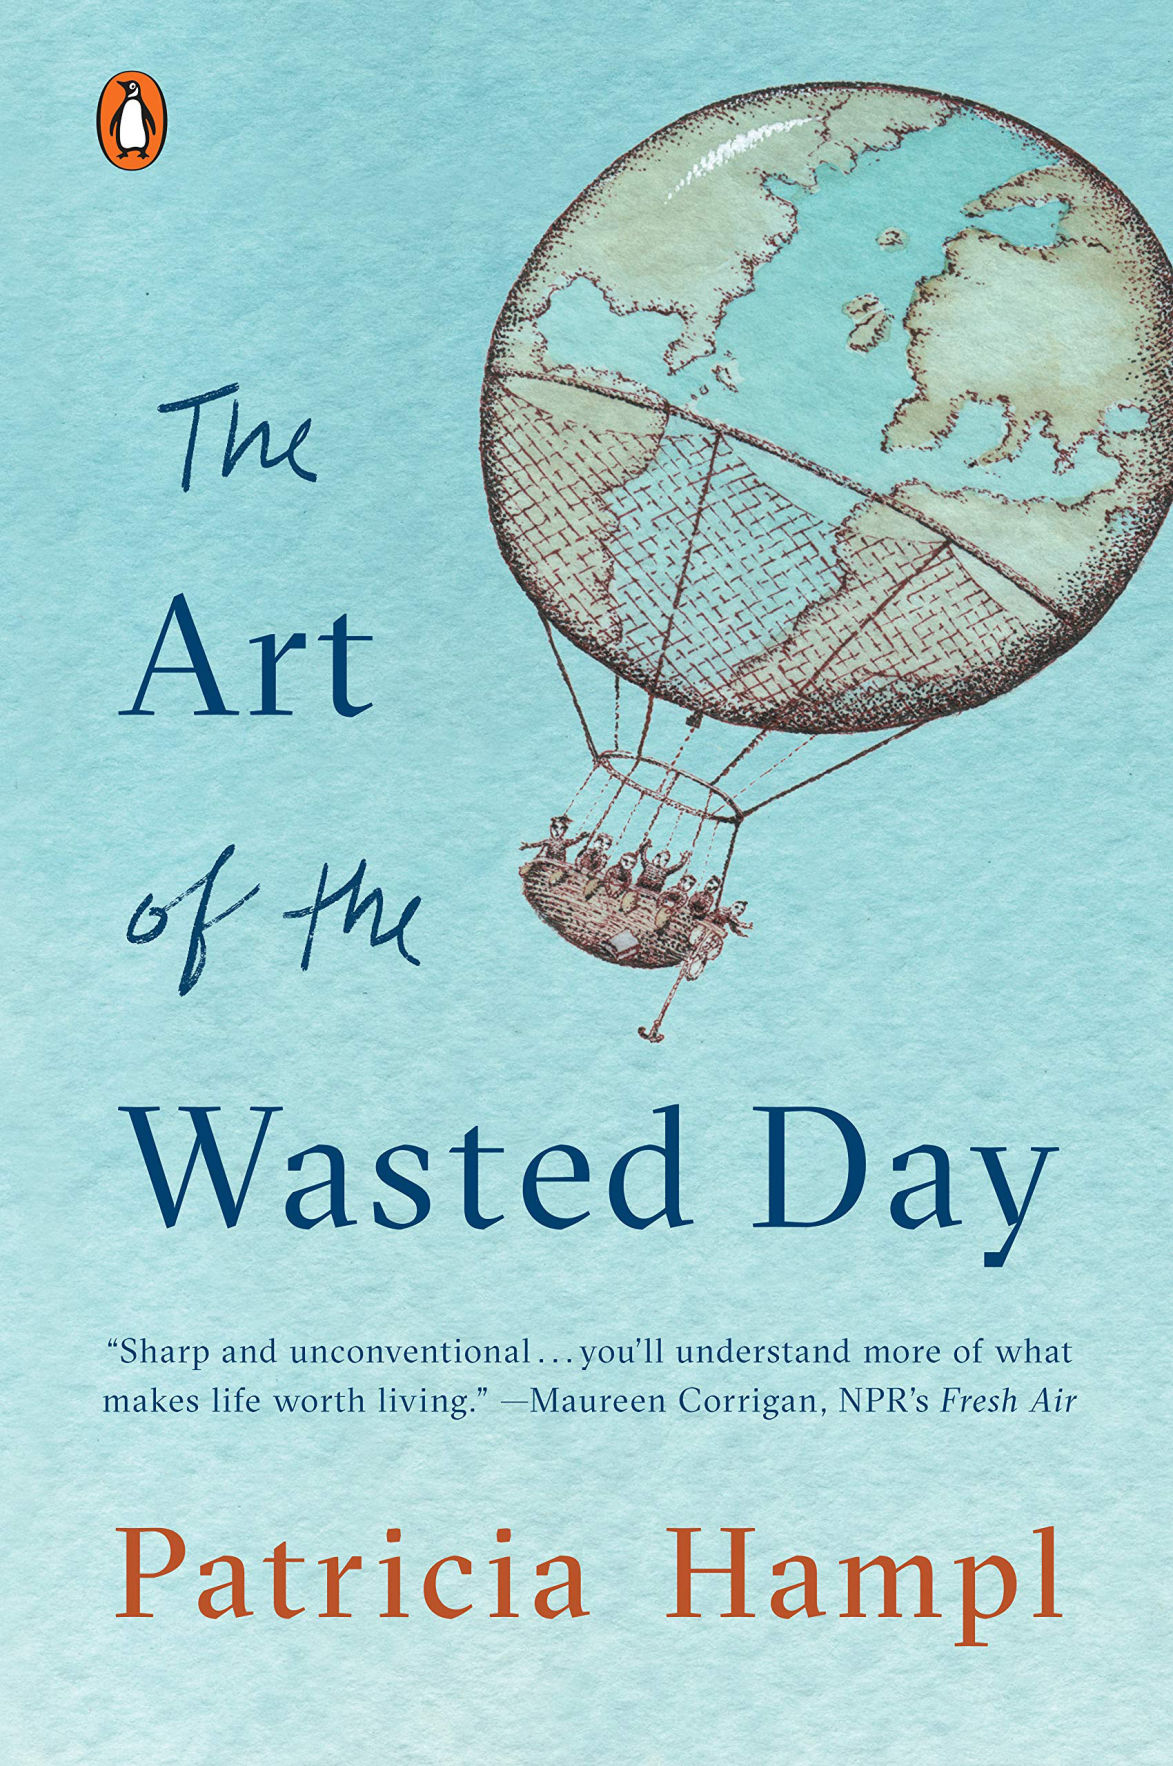 'The Art of the Wasted Day' by Patricia Hampl